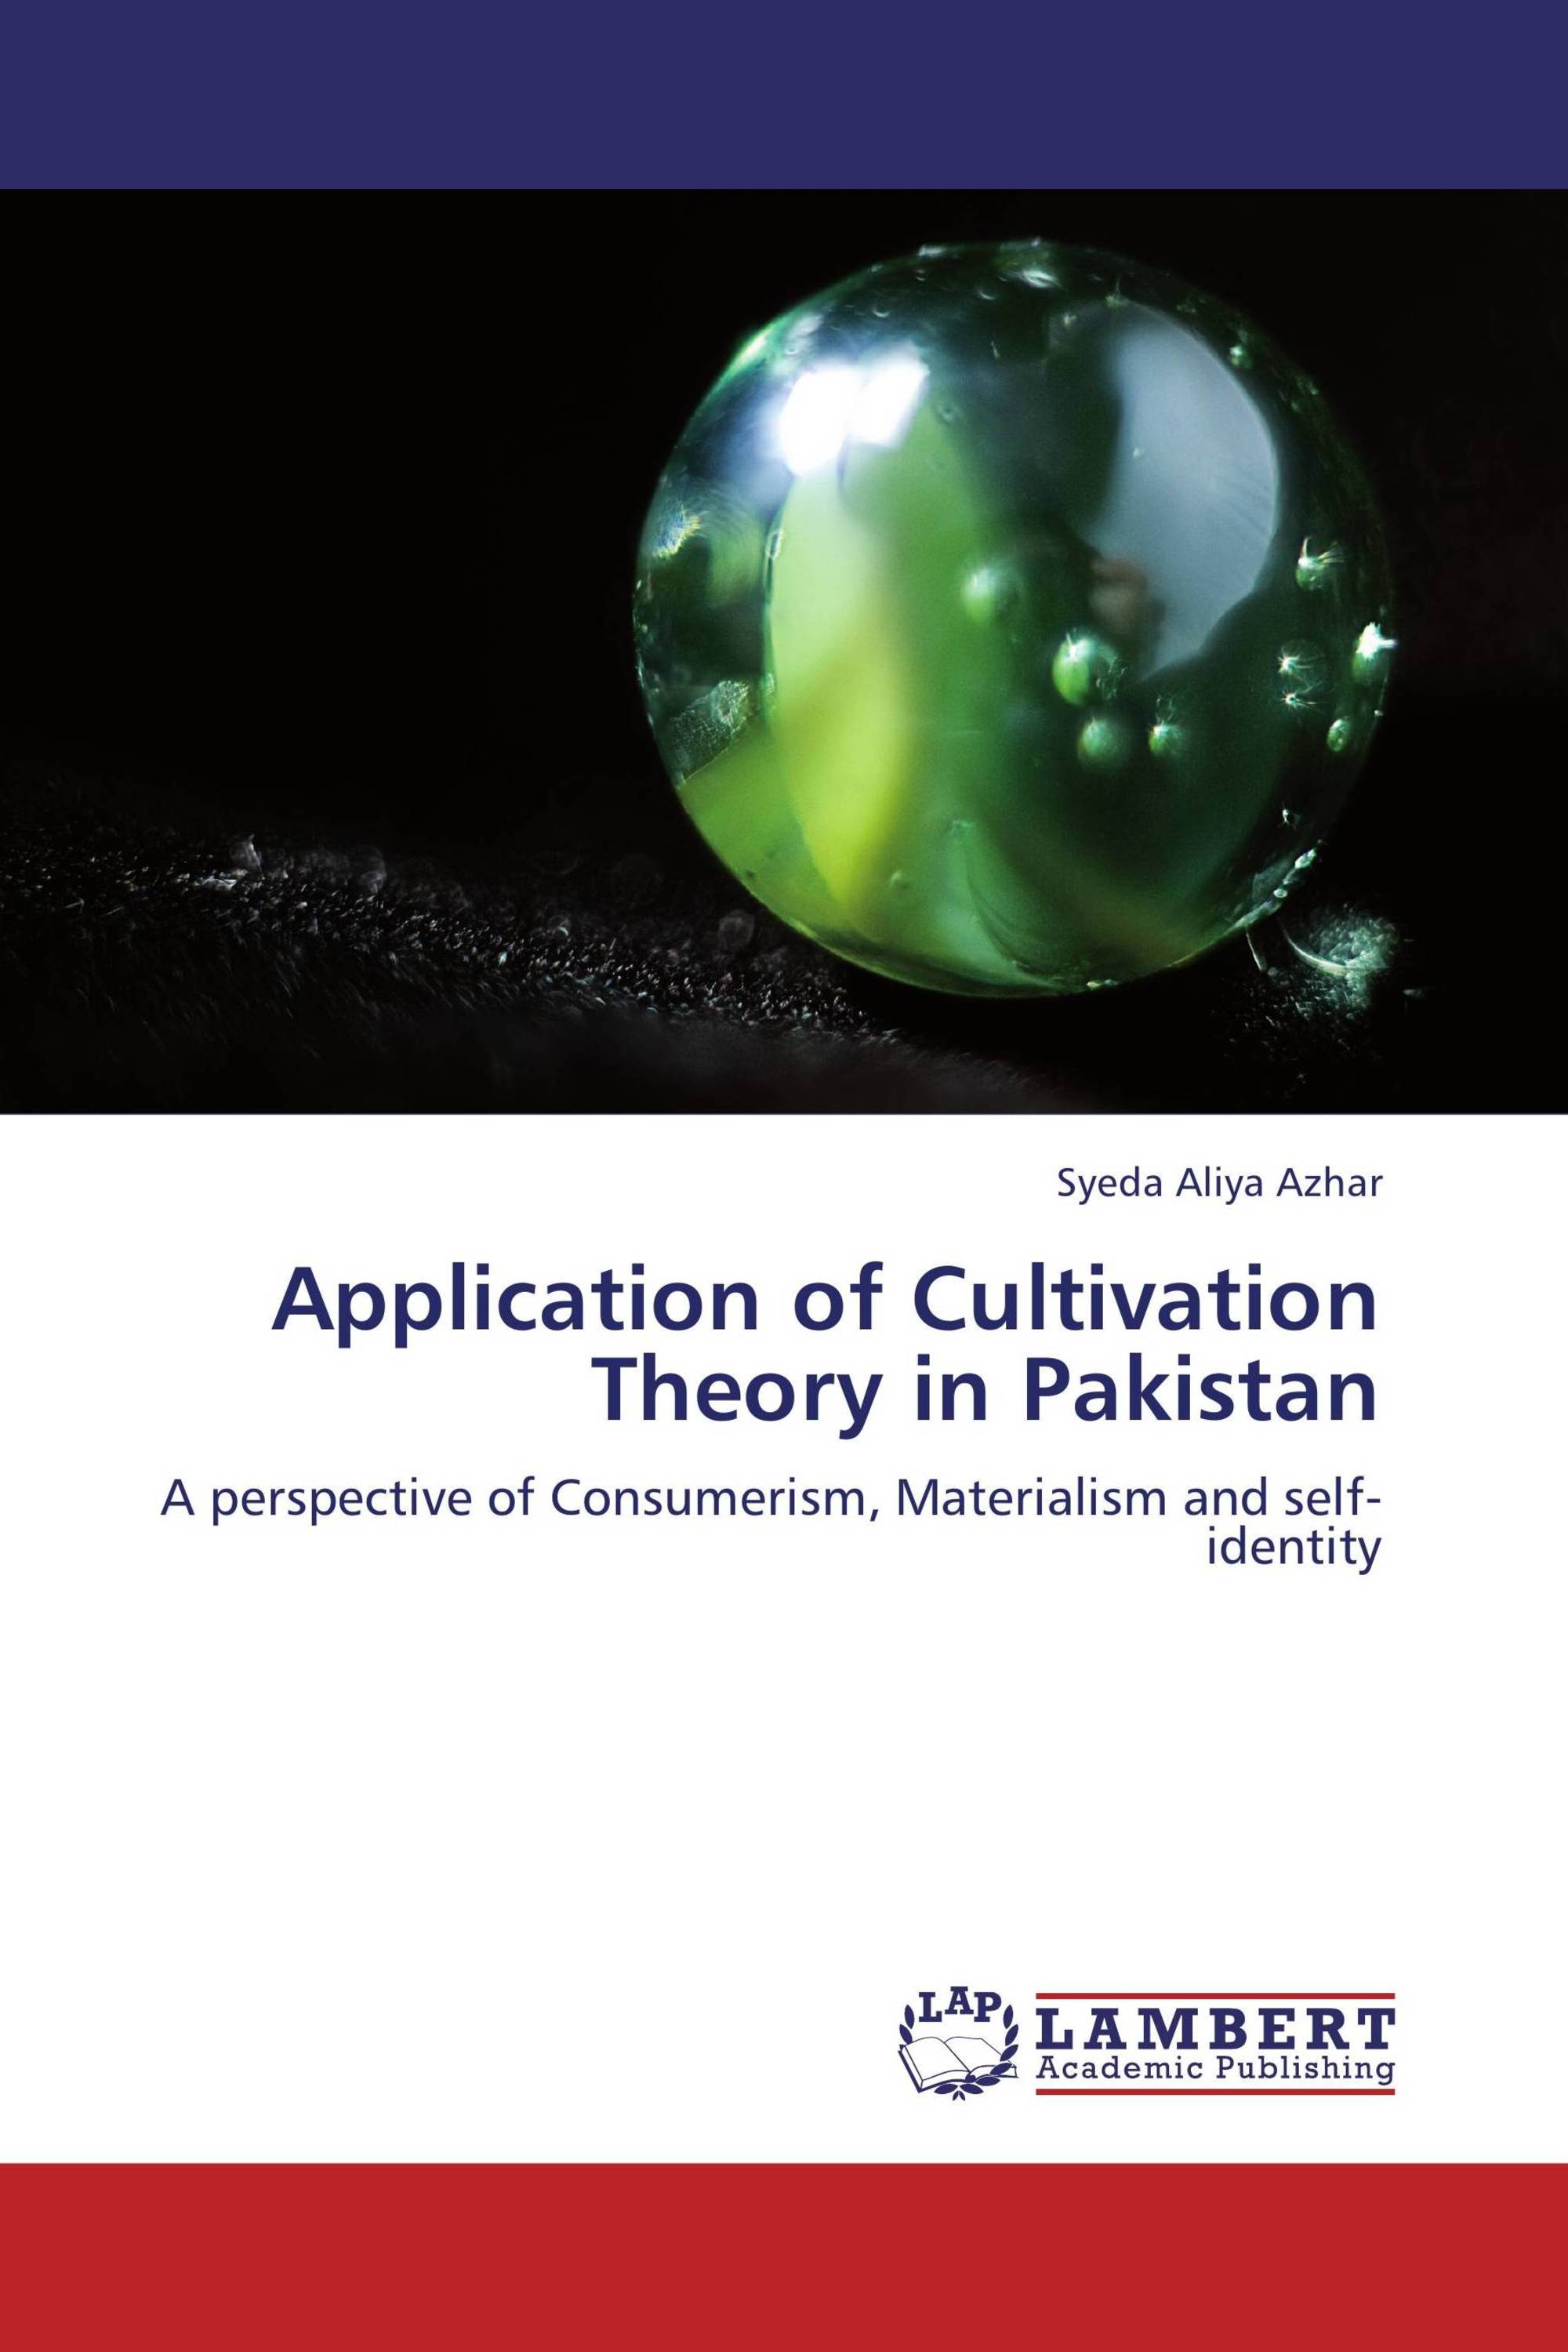 u09a1 application of theories and philosophy